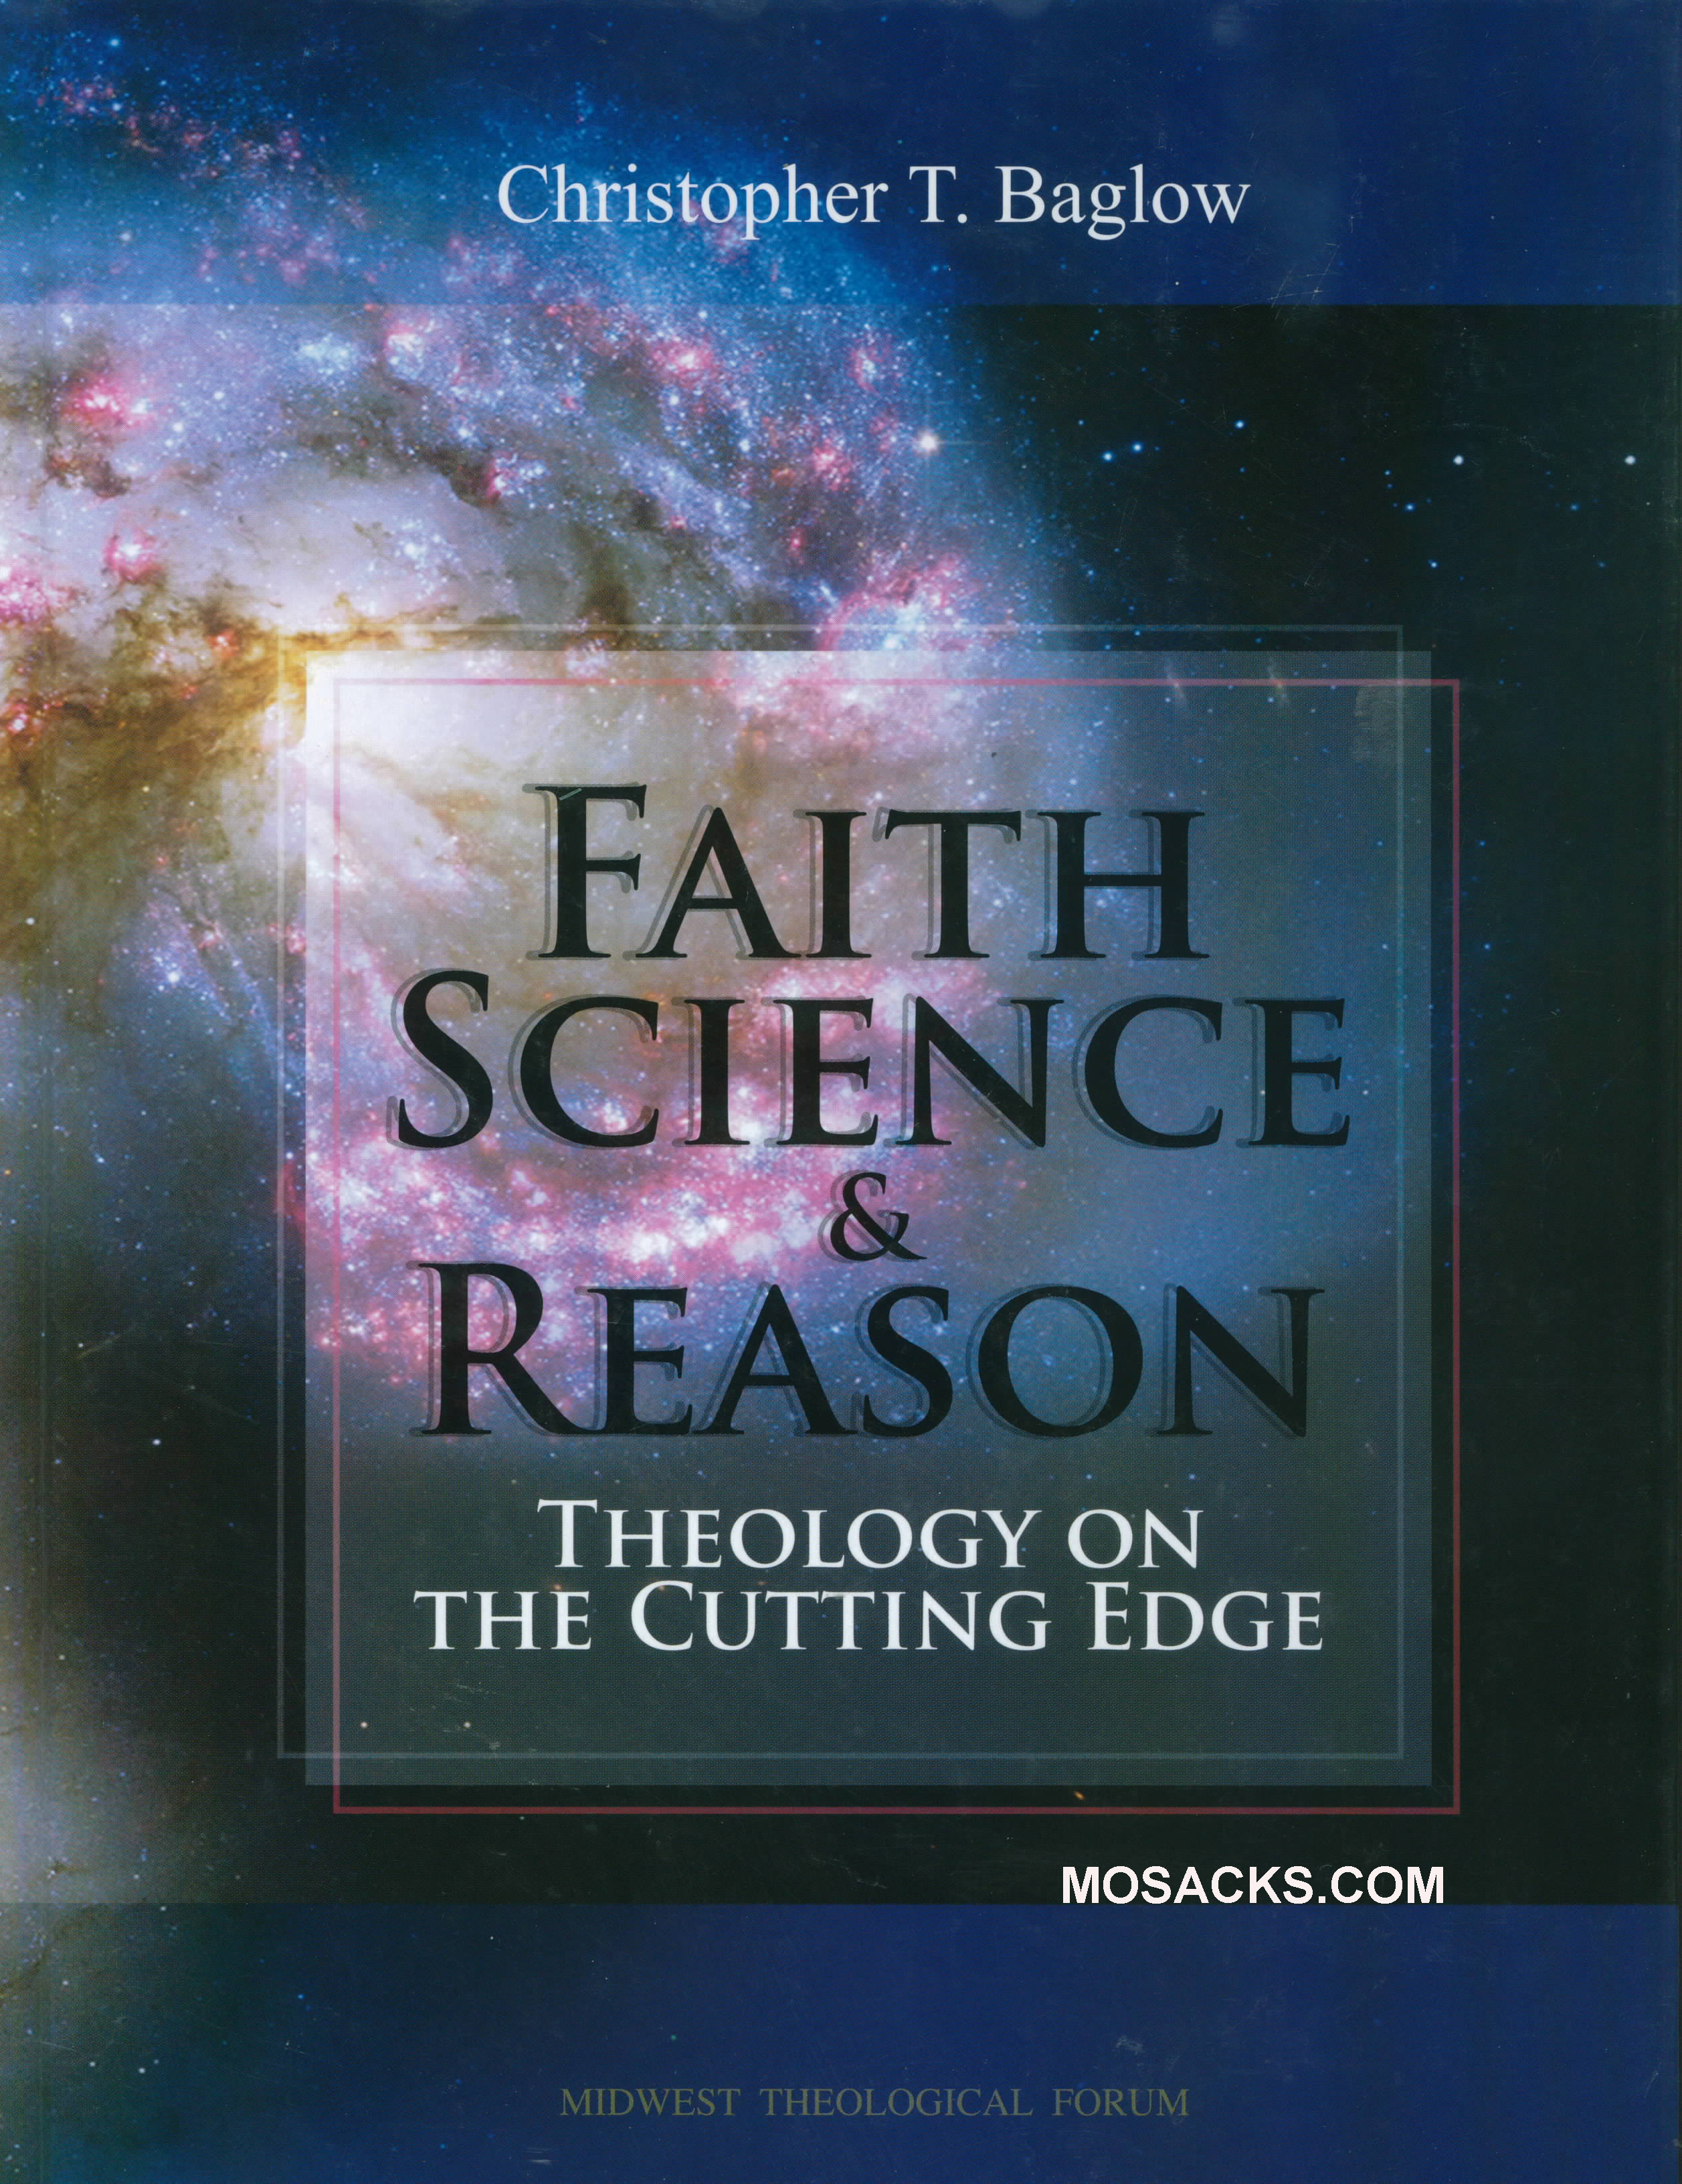 Faith Science & Reason Theology on the Cutting Edge by Baglow 445-45259